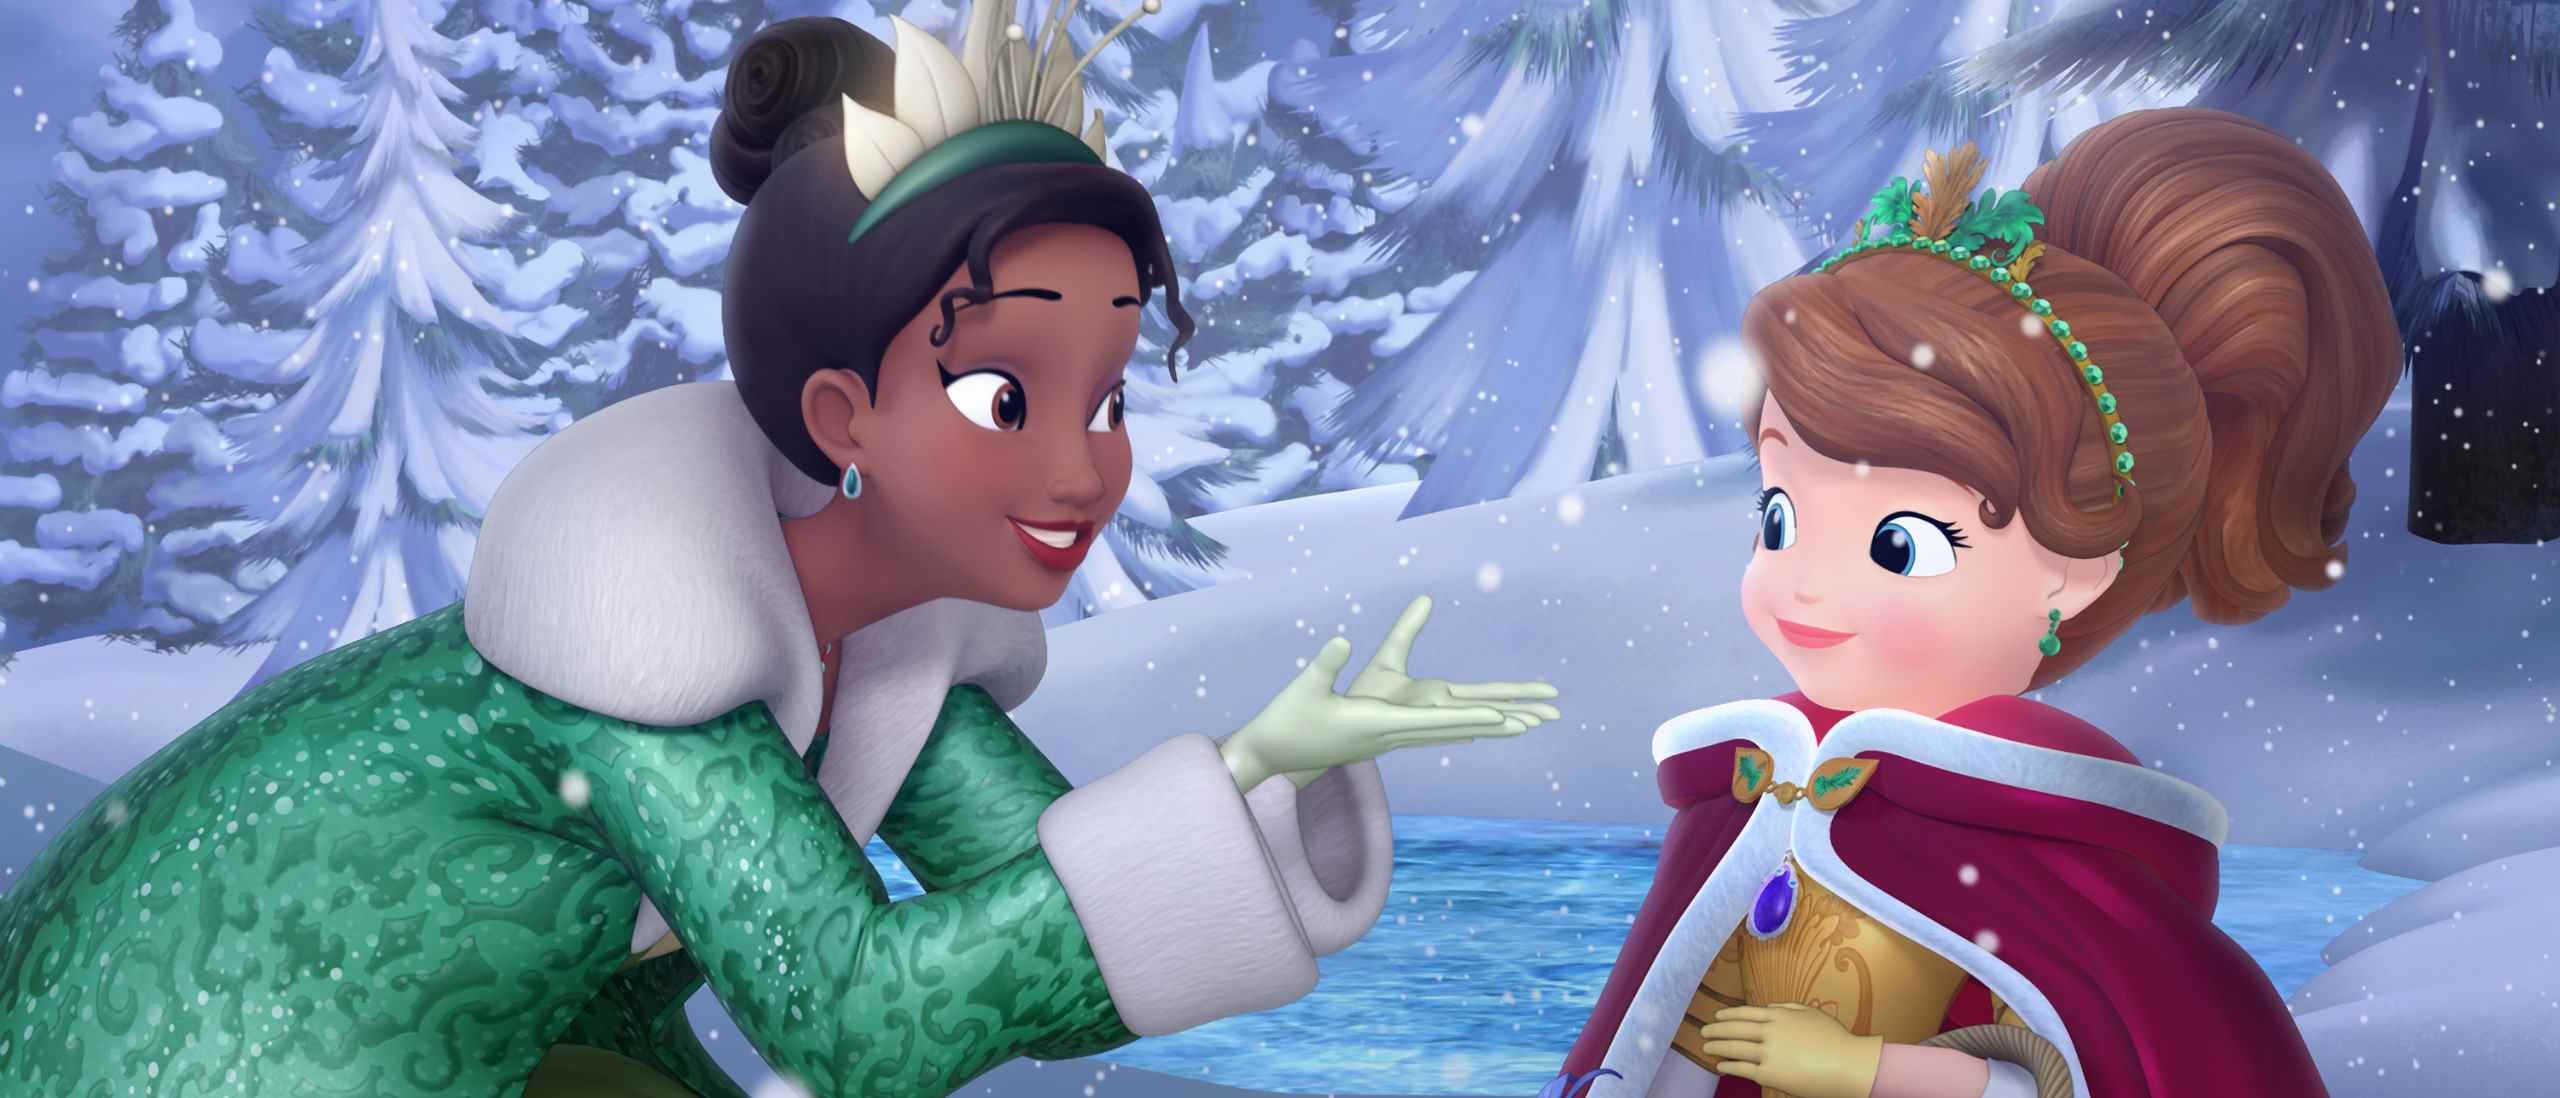 Sofia the First - Season 4 - Best Movies & TV Shows Online